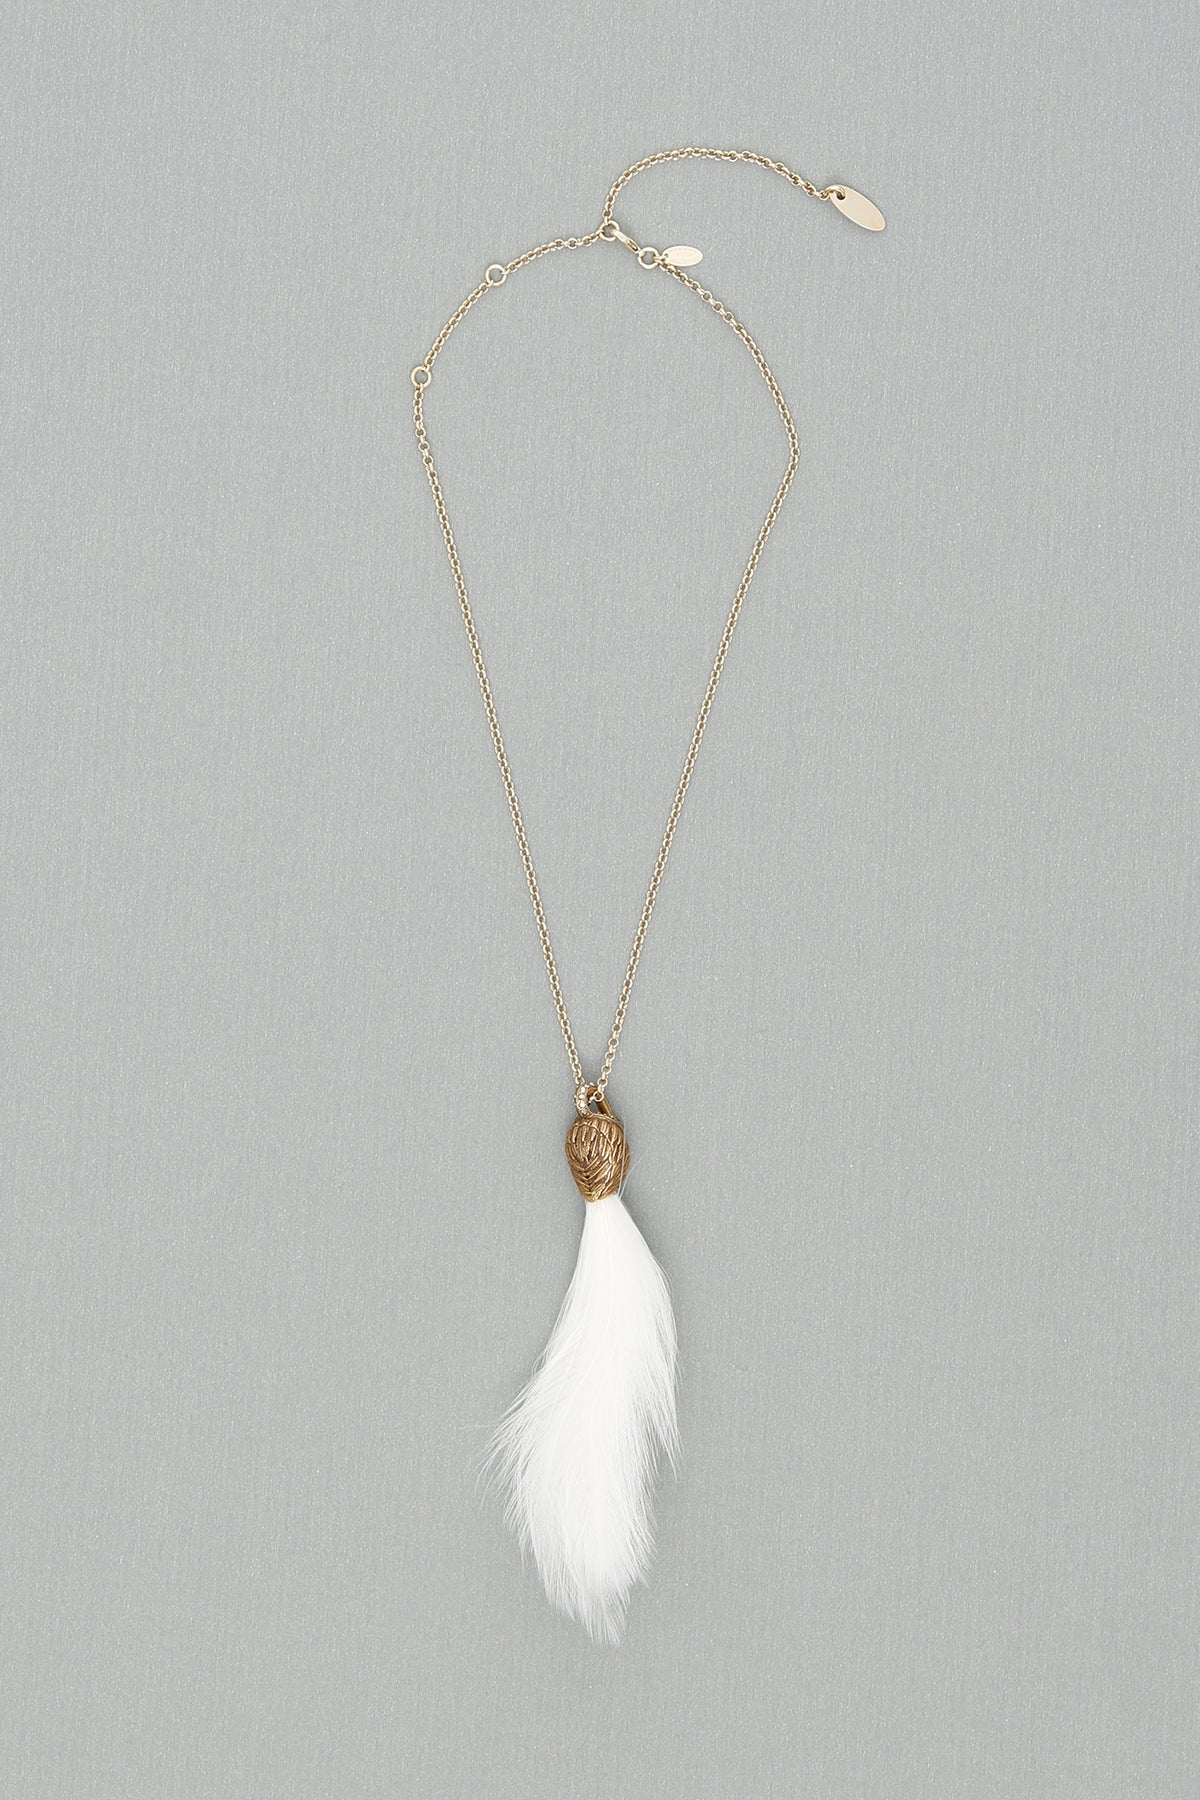 LANVIN SWAN FEATHER NECKLACE